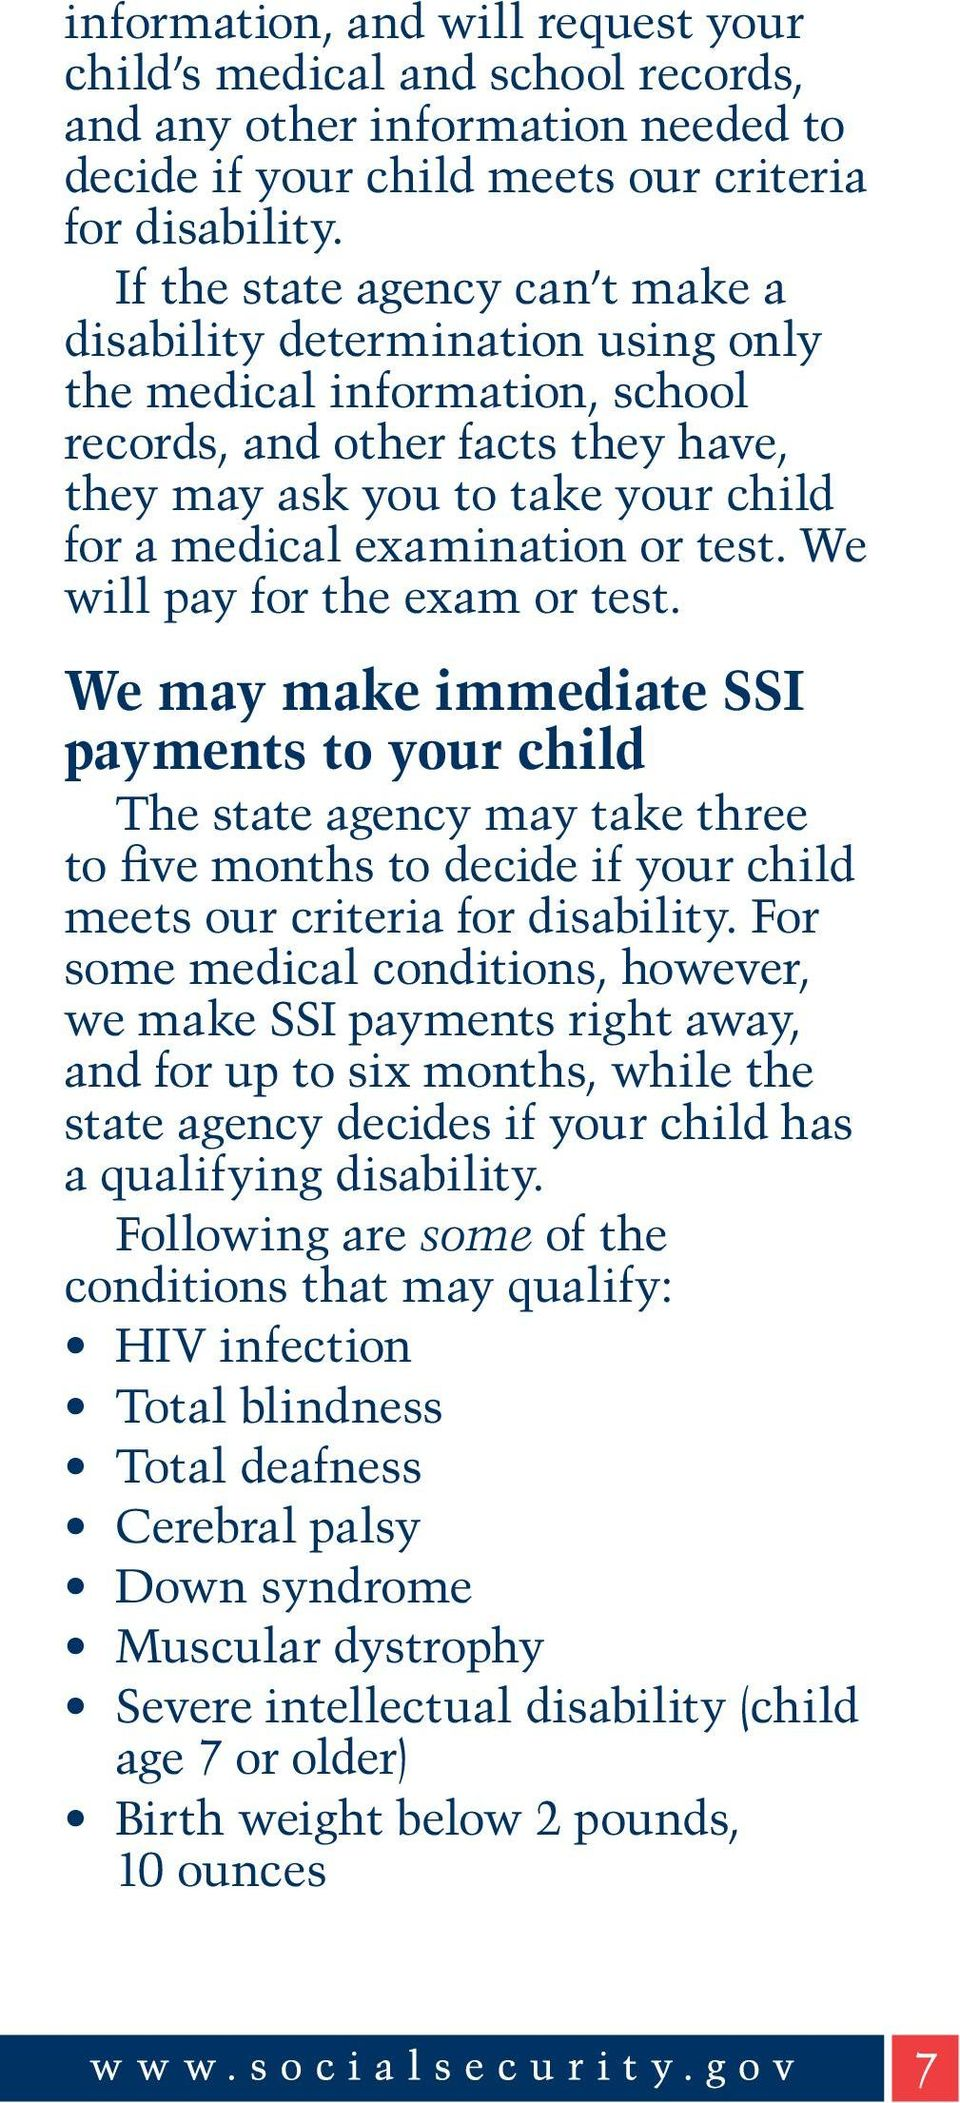 or test. We will pay for the exam or test. We may make immediate SSI payments to your child The state agency may take three to five months to decide if your child meets our criteria for disability.